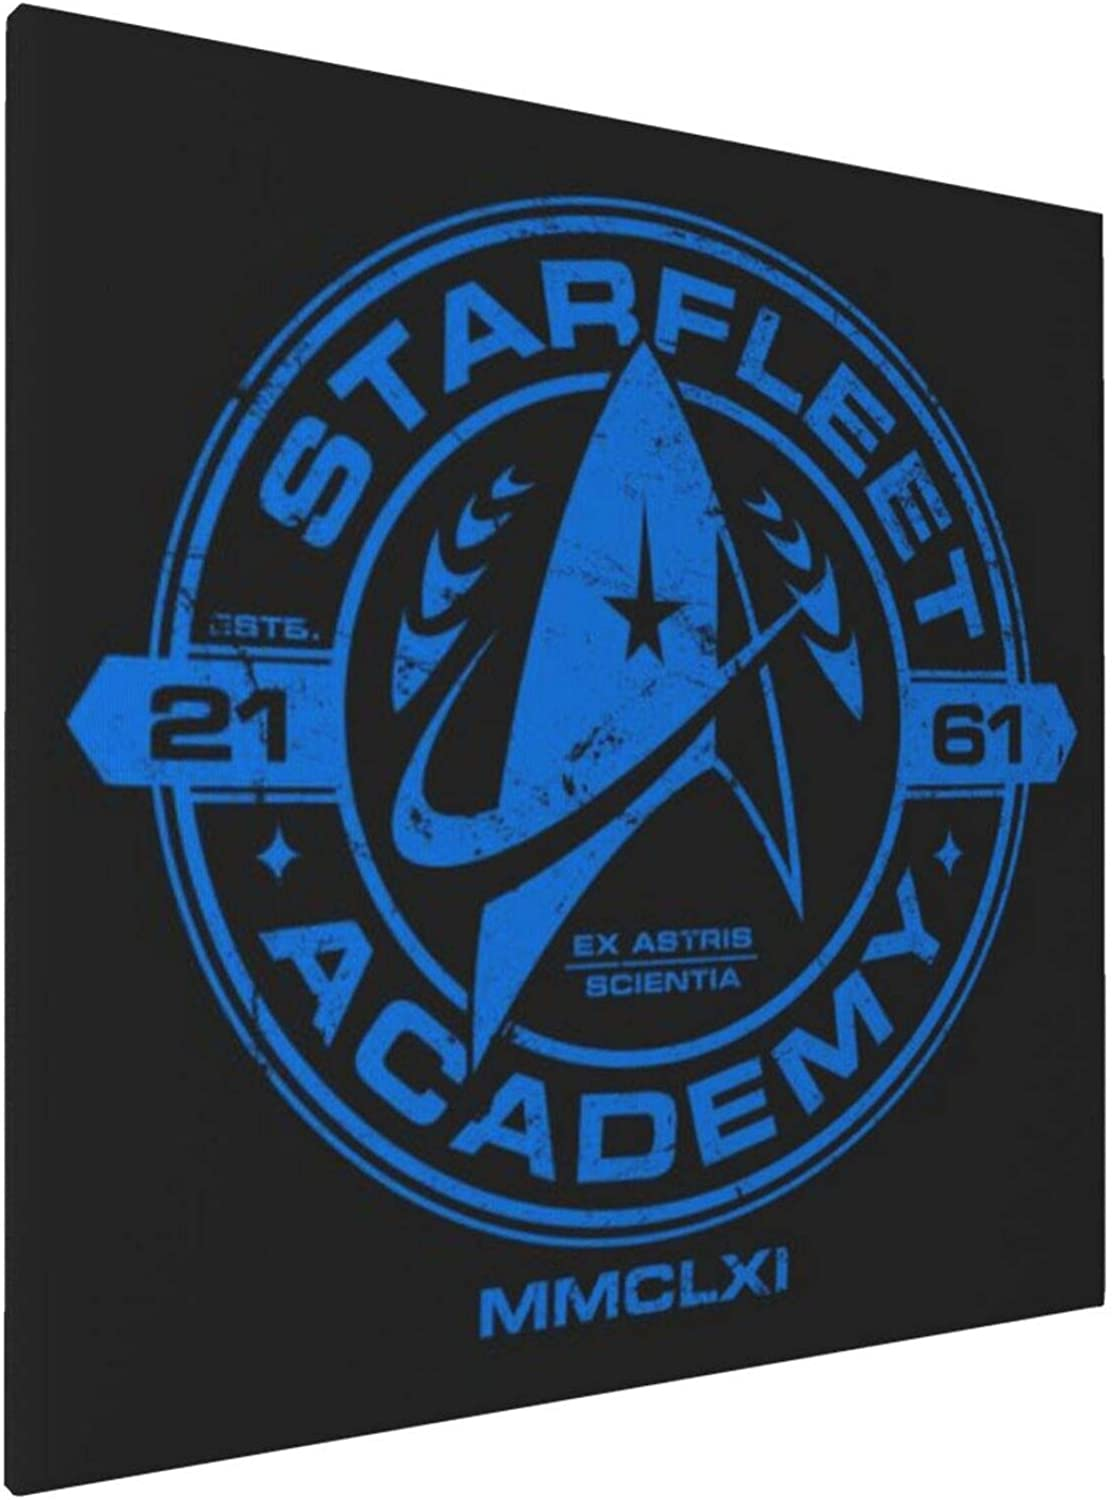 1045 Canvas Prints Wall Art Paintings(20x20in) Starfleet Academy Star Trek Blue Pictures Home Office Decor Framed Posters & Prints